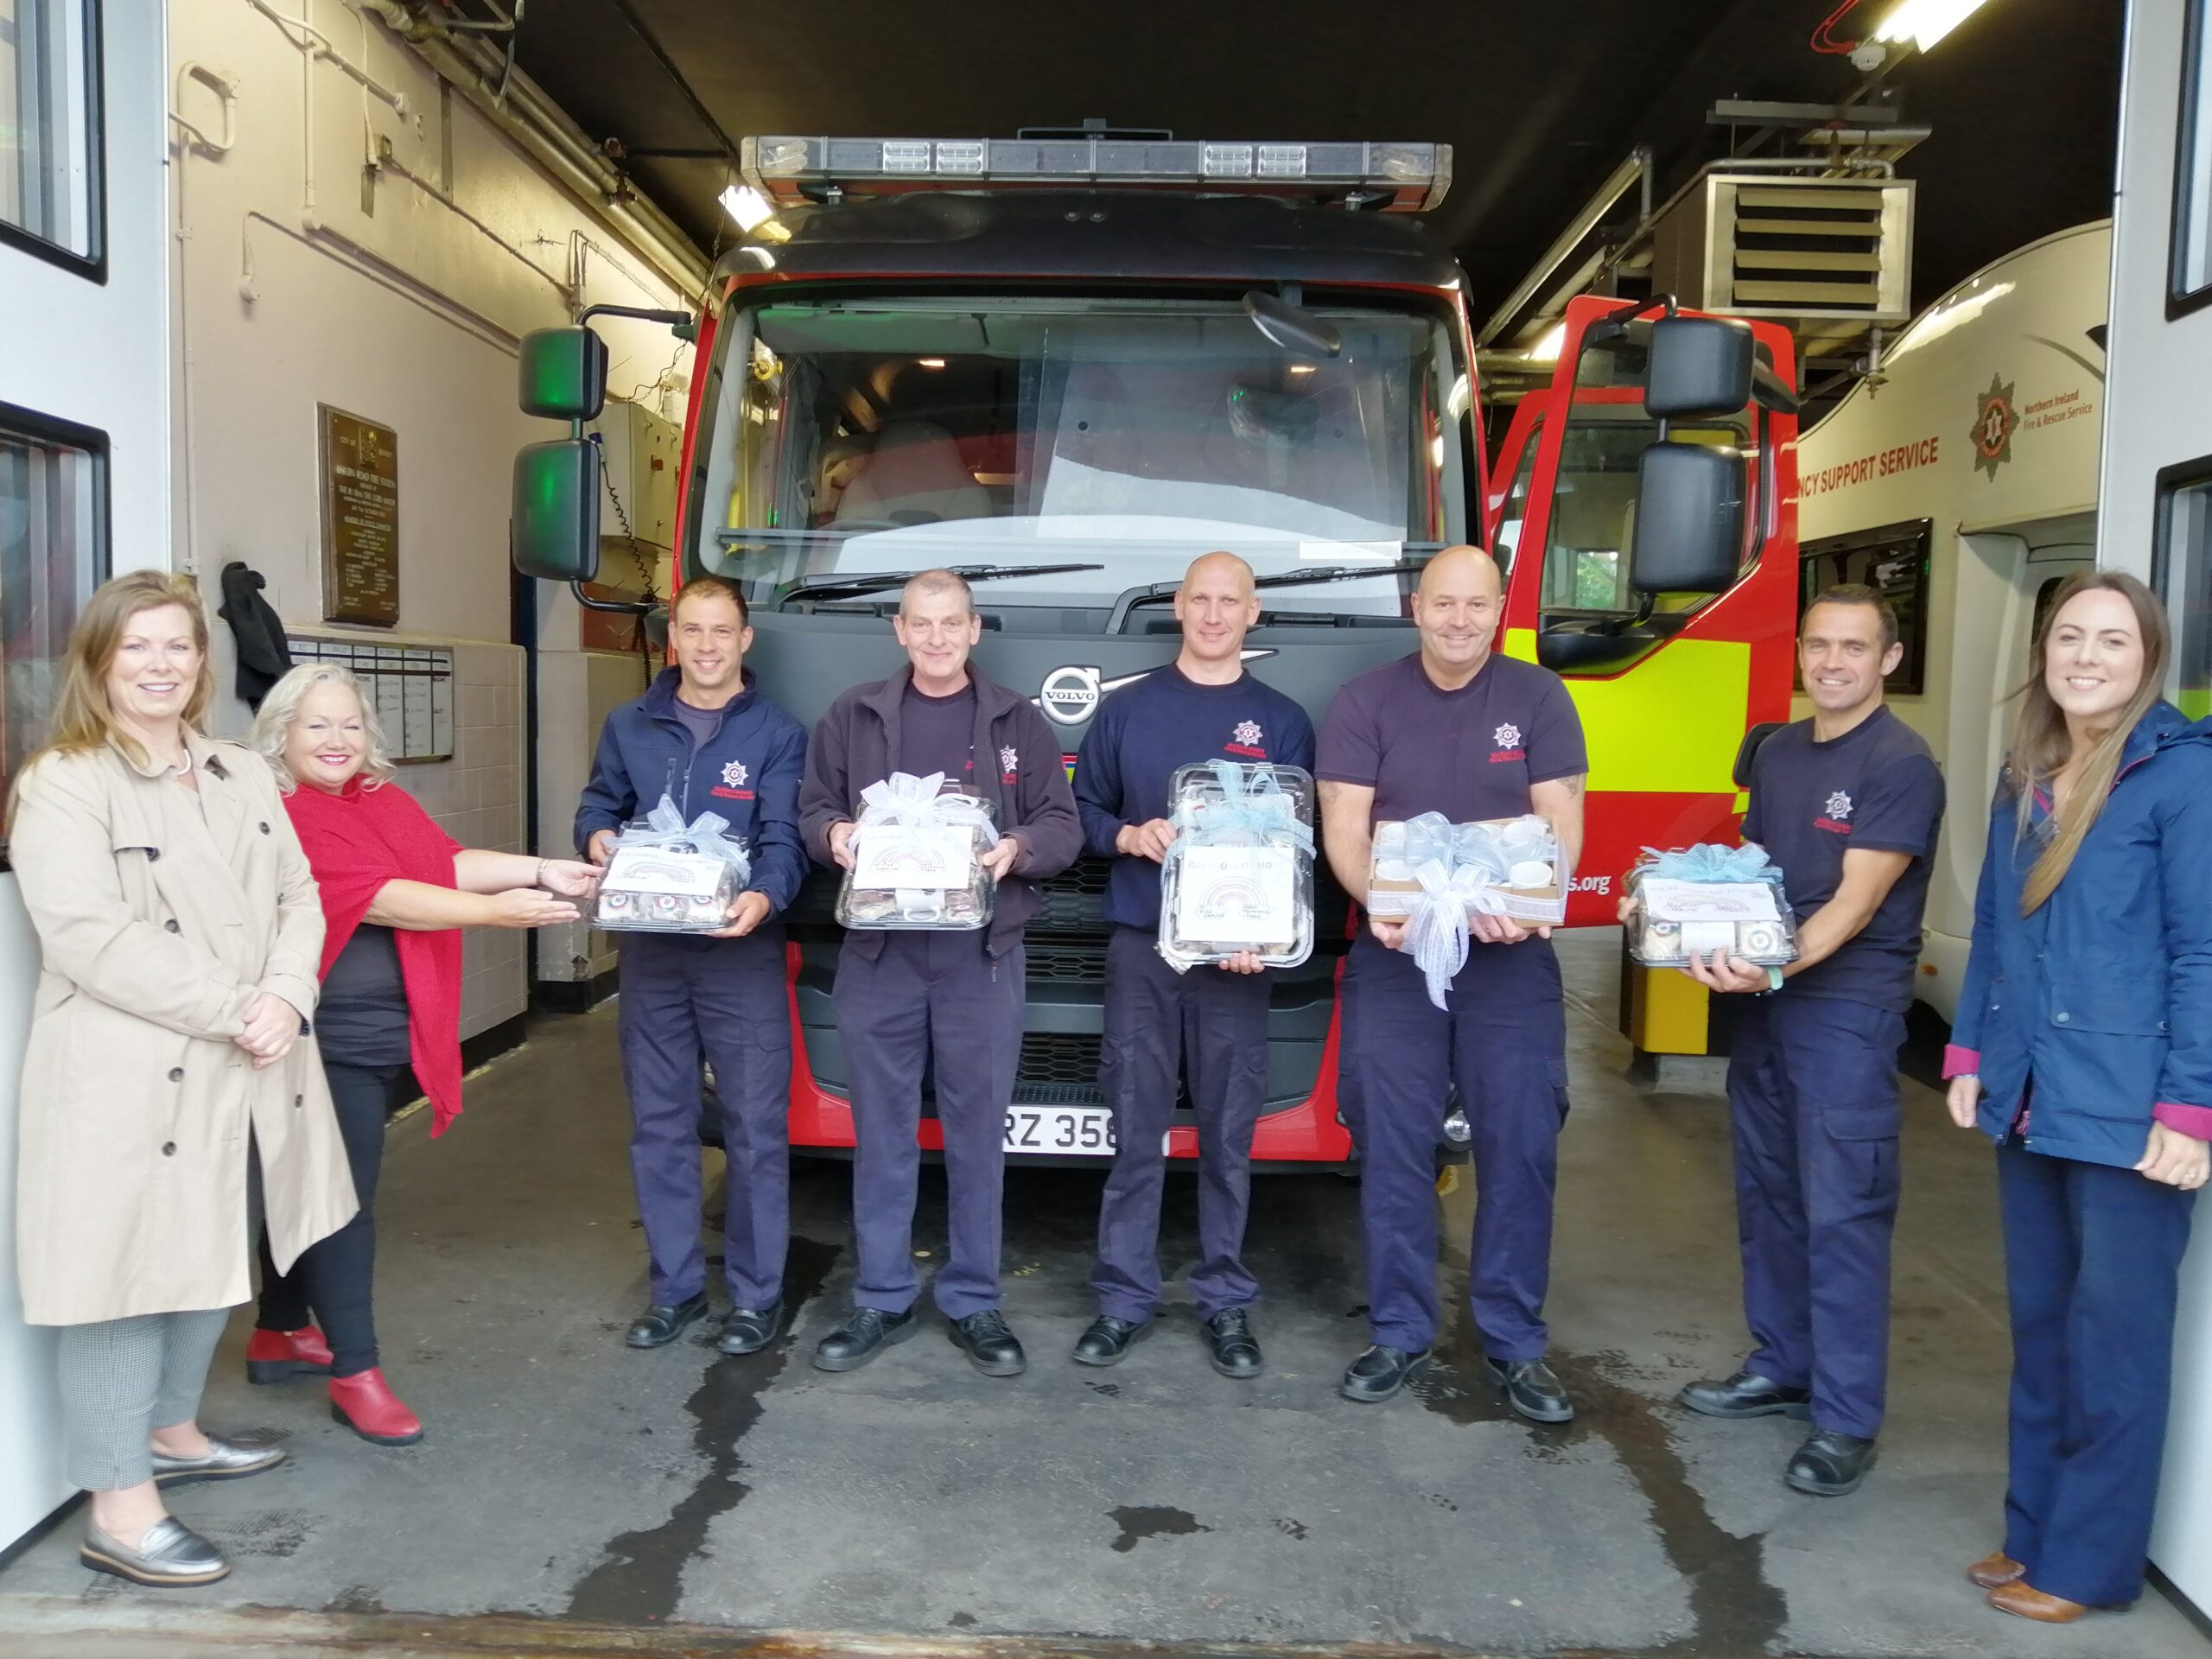 Hydebank prisons gift mugs - Newry latest news